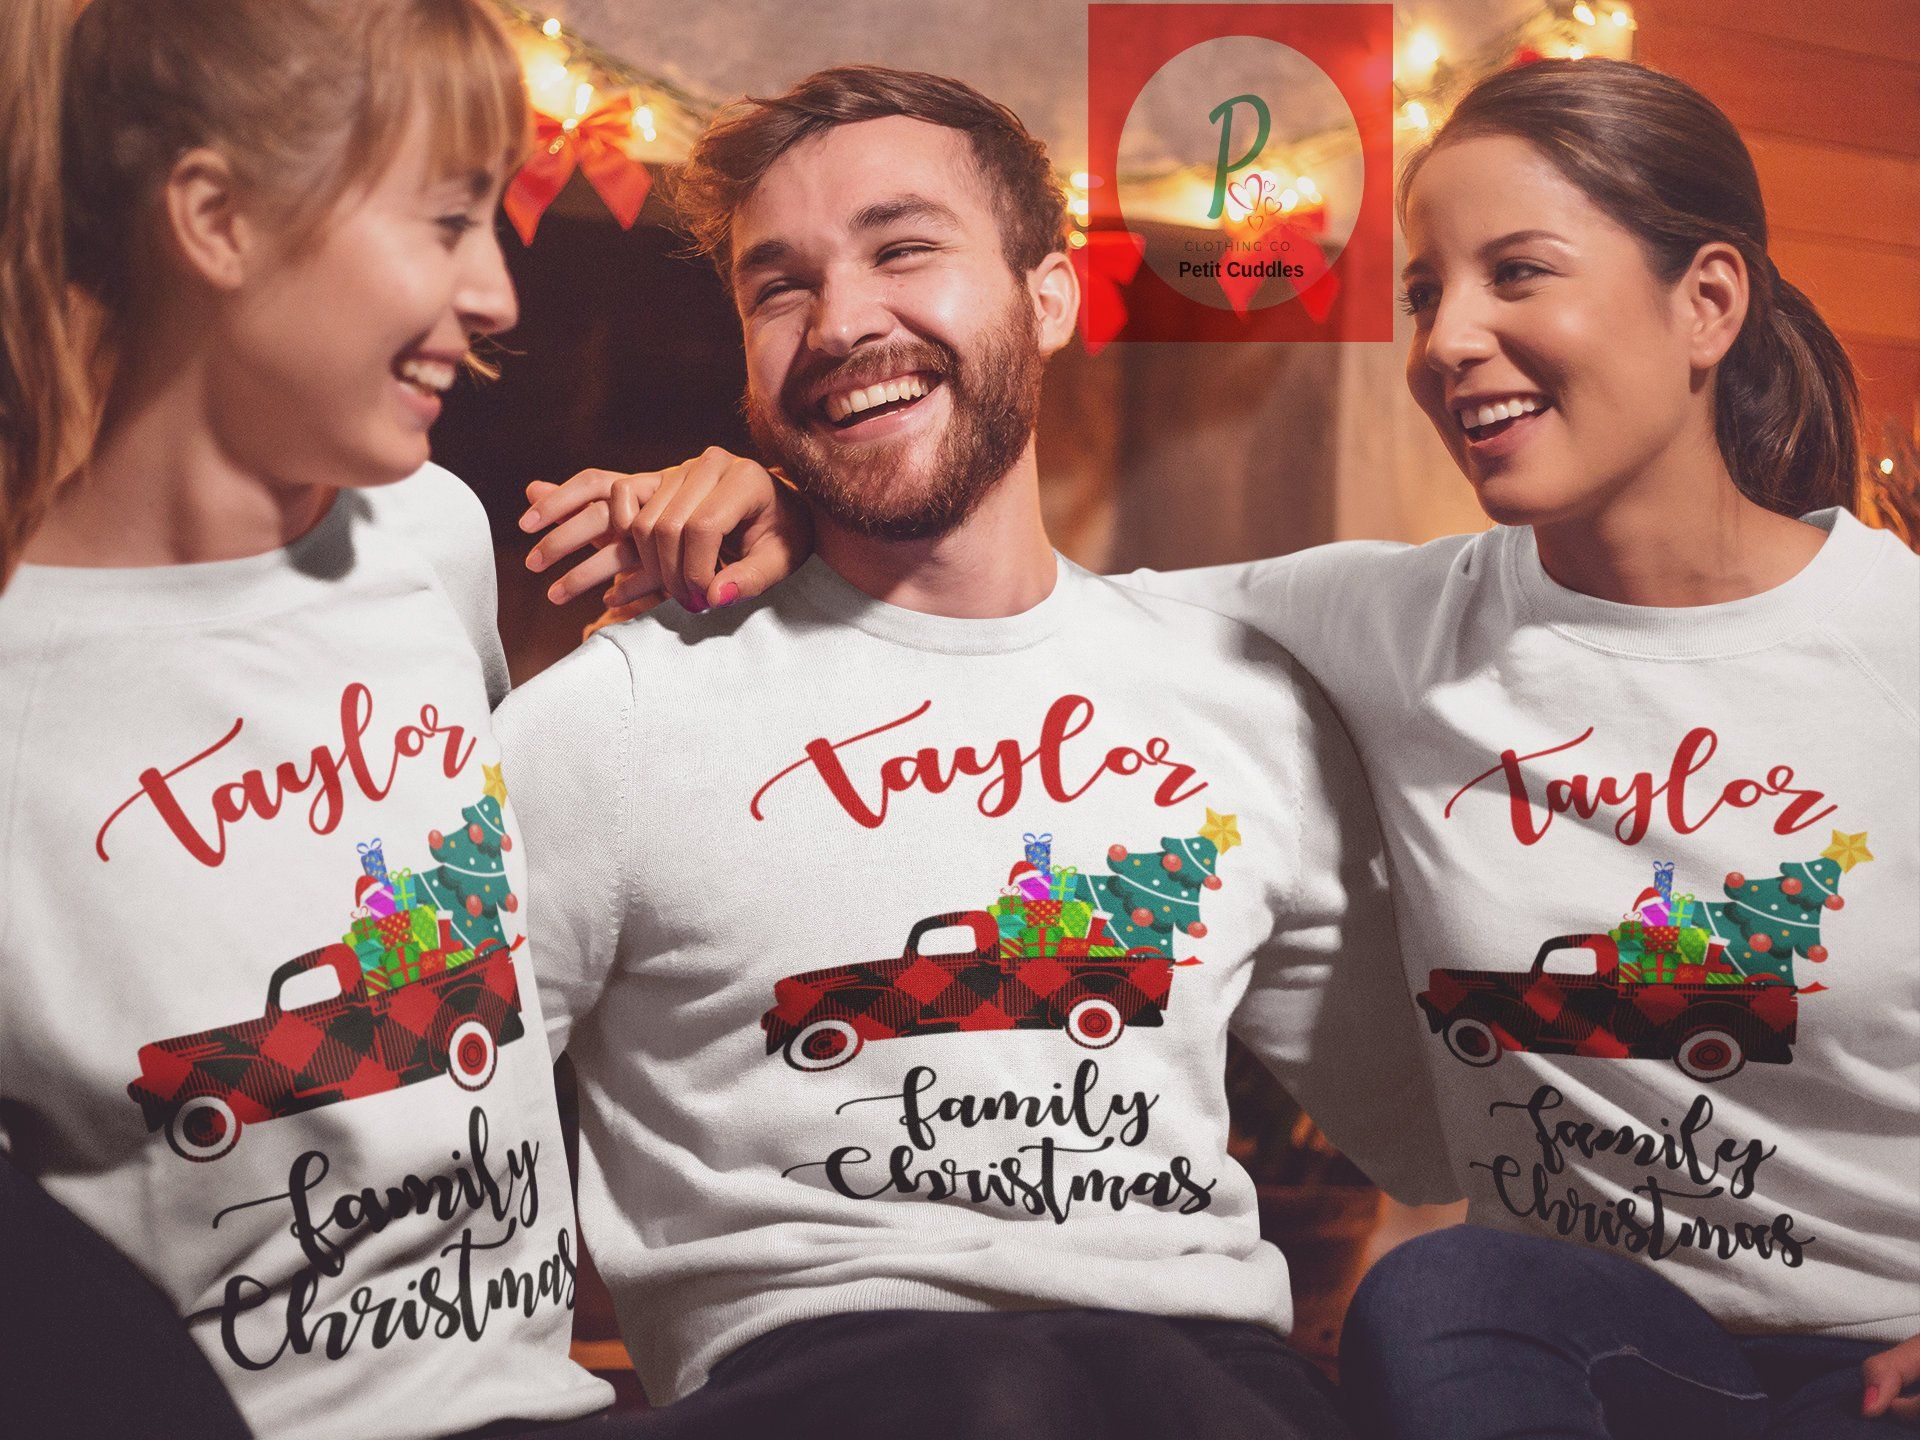 814d02da49 Old Christmas family pajamas matching personalized red truck custom holiday  shirts buffalo plaid vintage family name